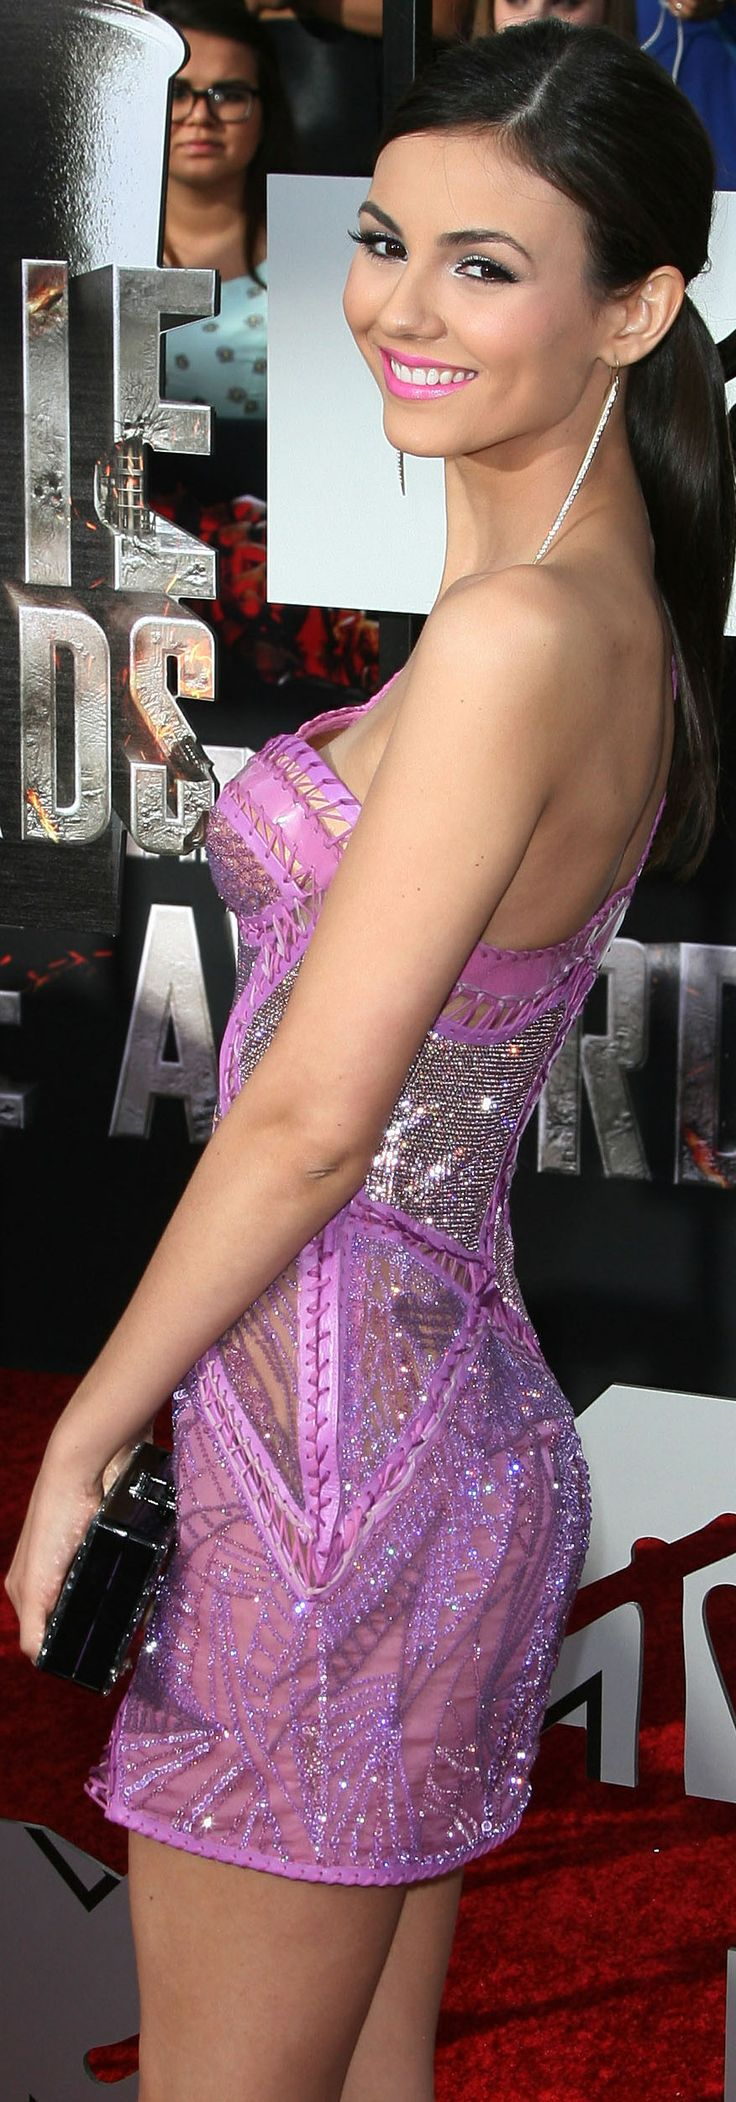 Victoria Justice - 2014 MTV Movie Awards - Los Angeles - April 13, 2014